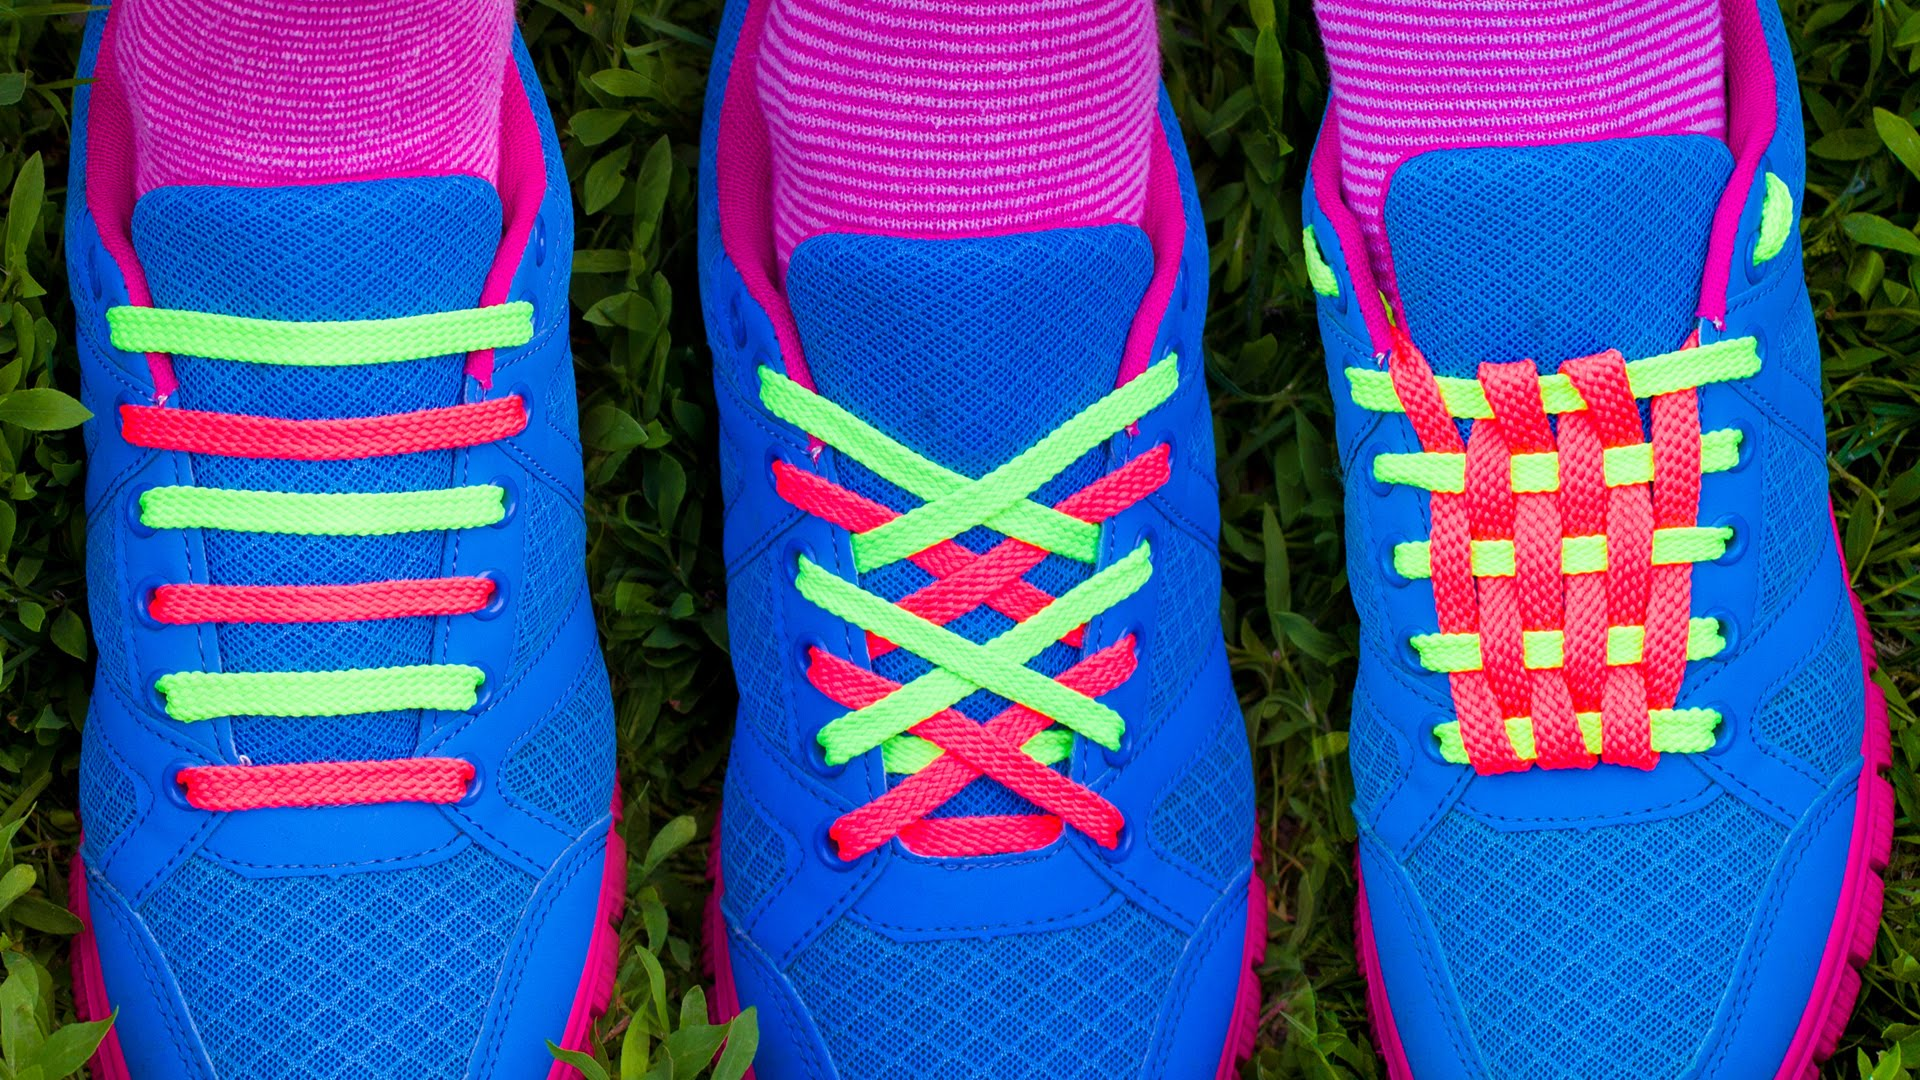 How do you tie your shoelaces?